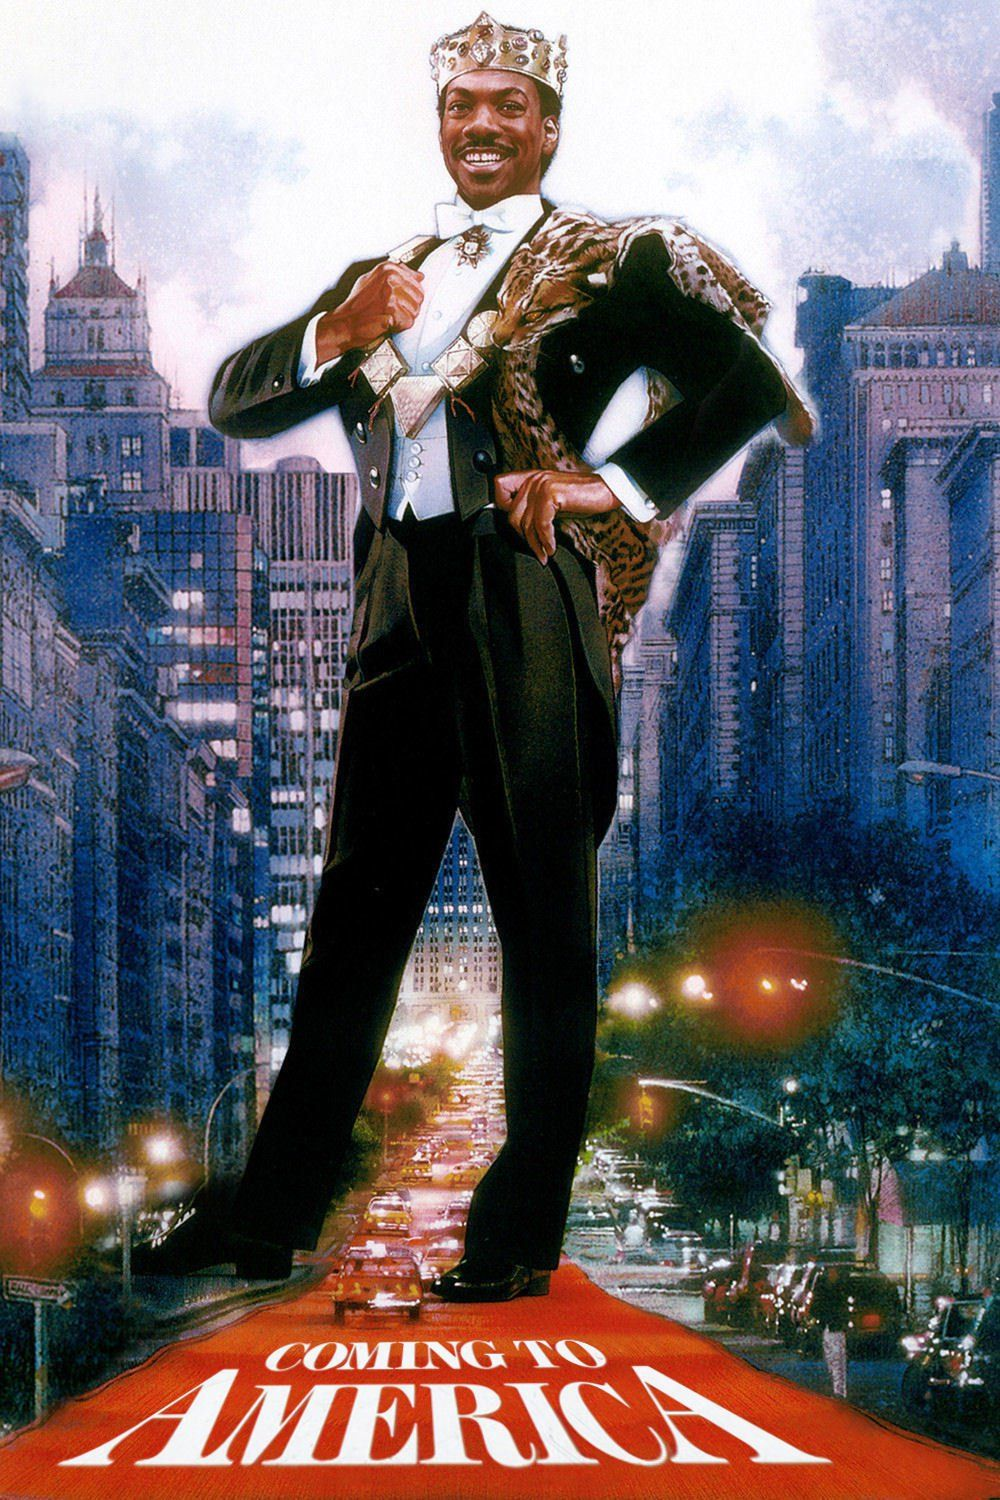 Iconic '80s Movies Ranked - The Best Eighties Movies Ever